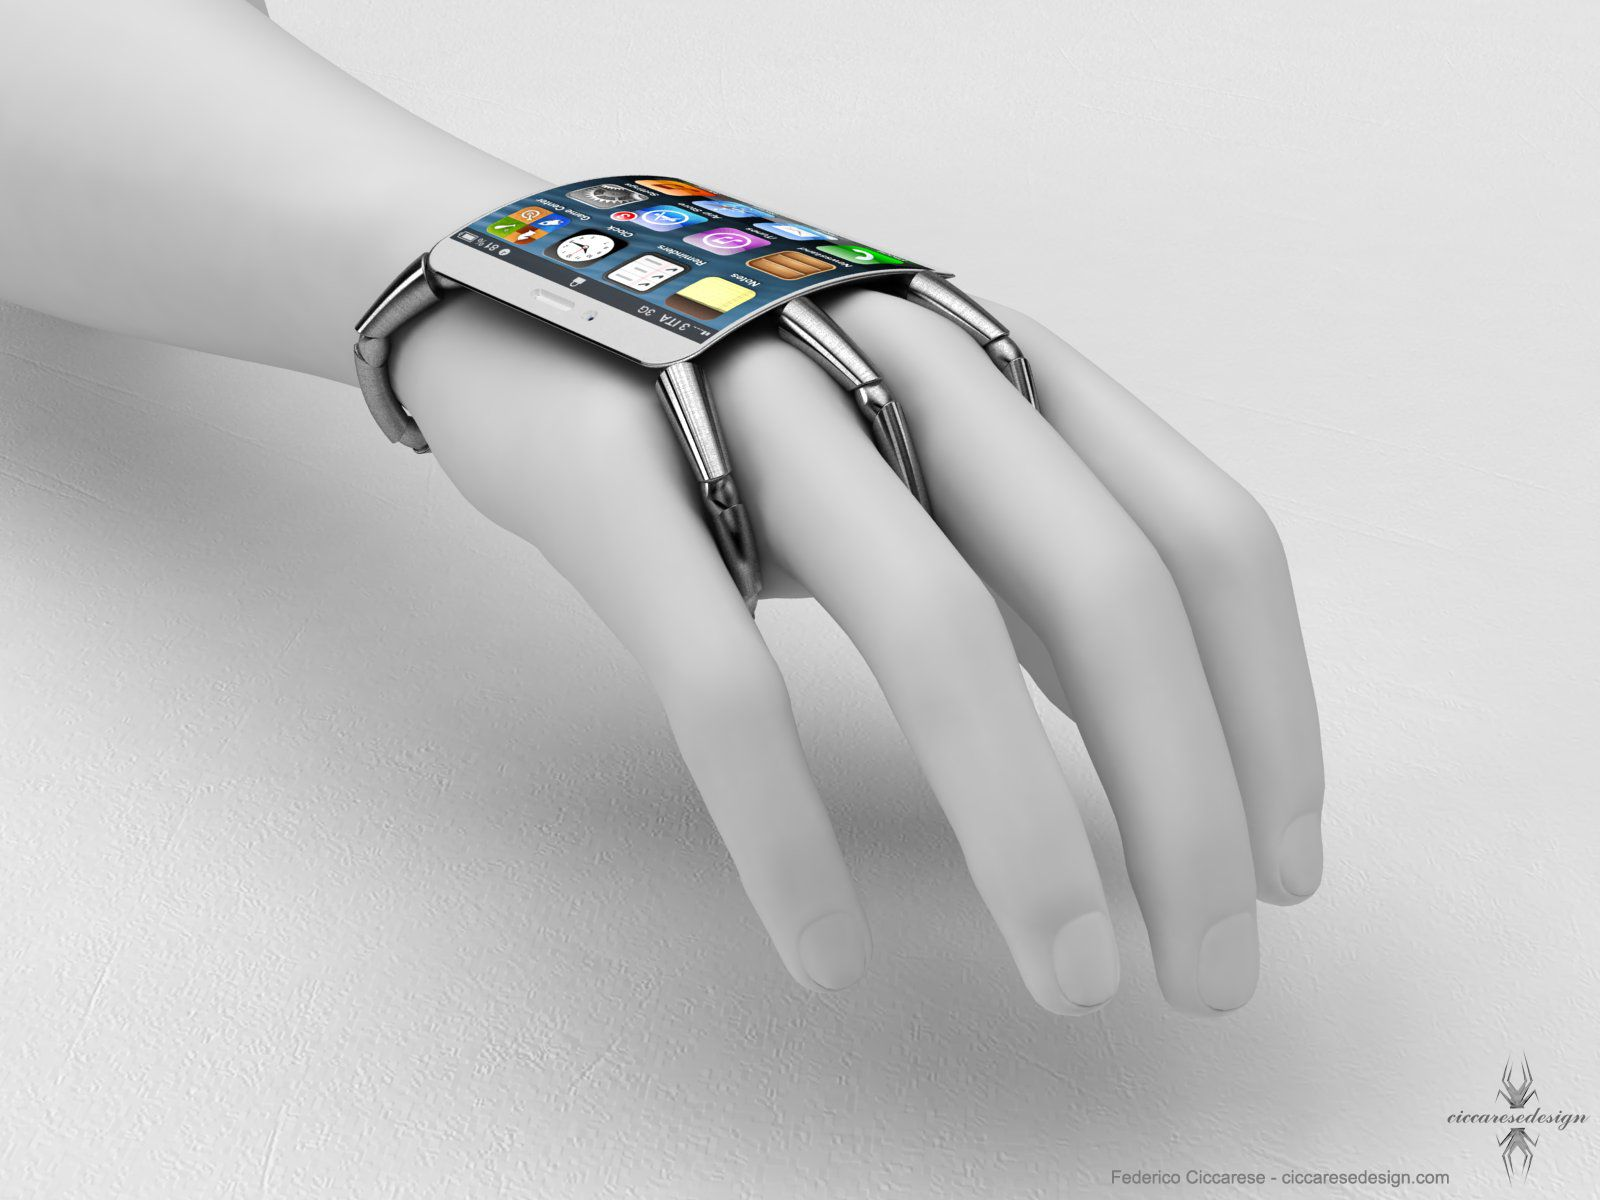 Concept design for iPhone glove thing Wearable tech